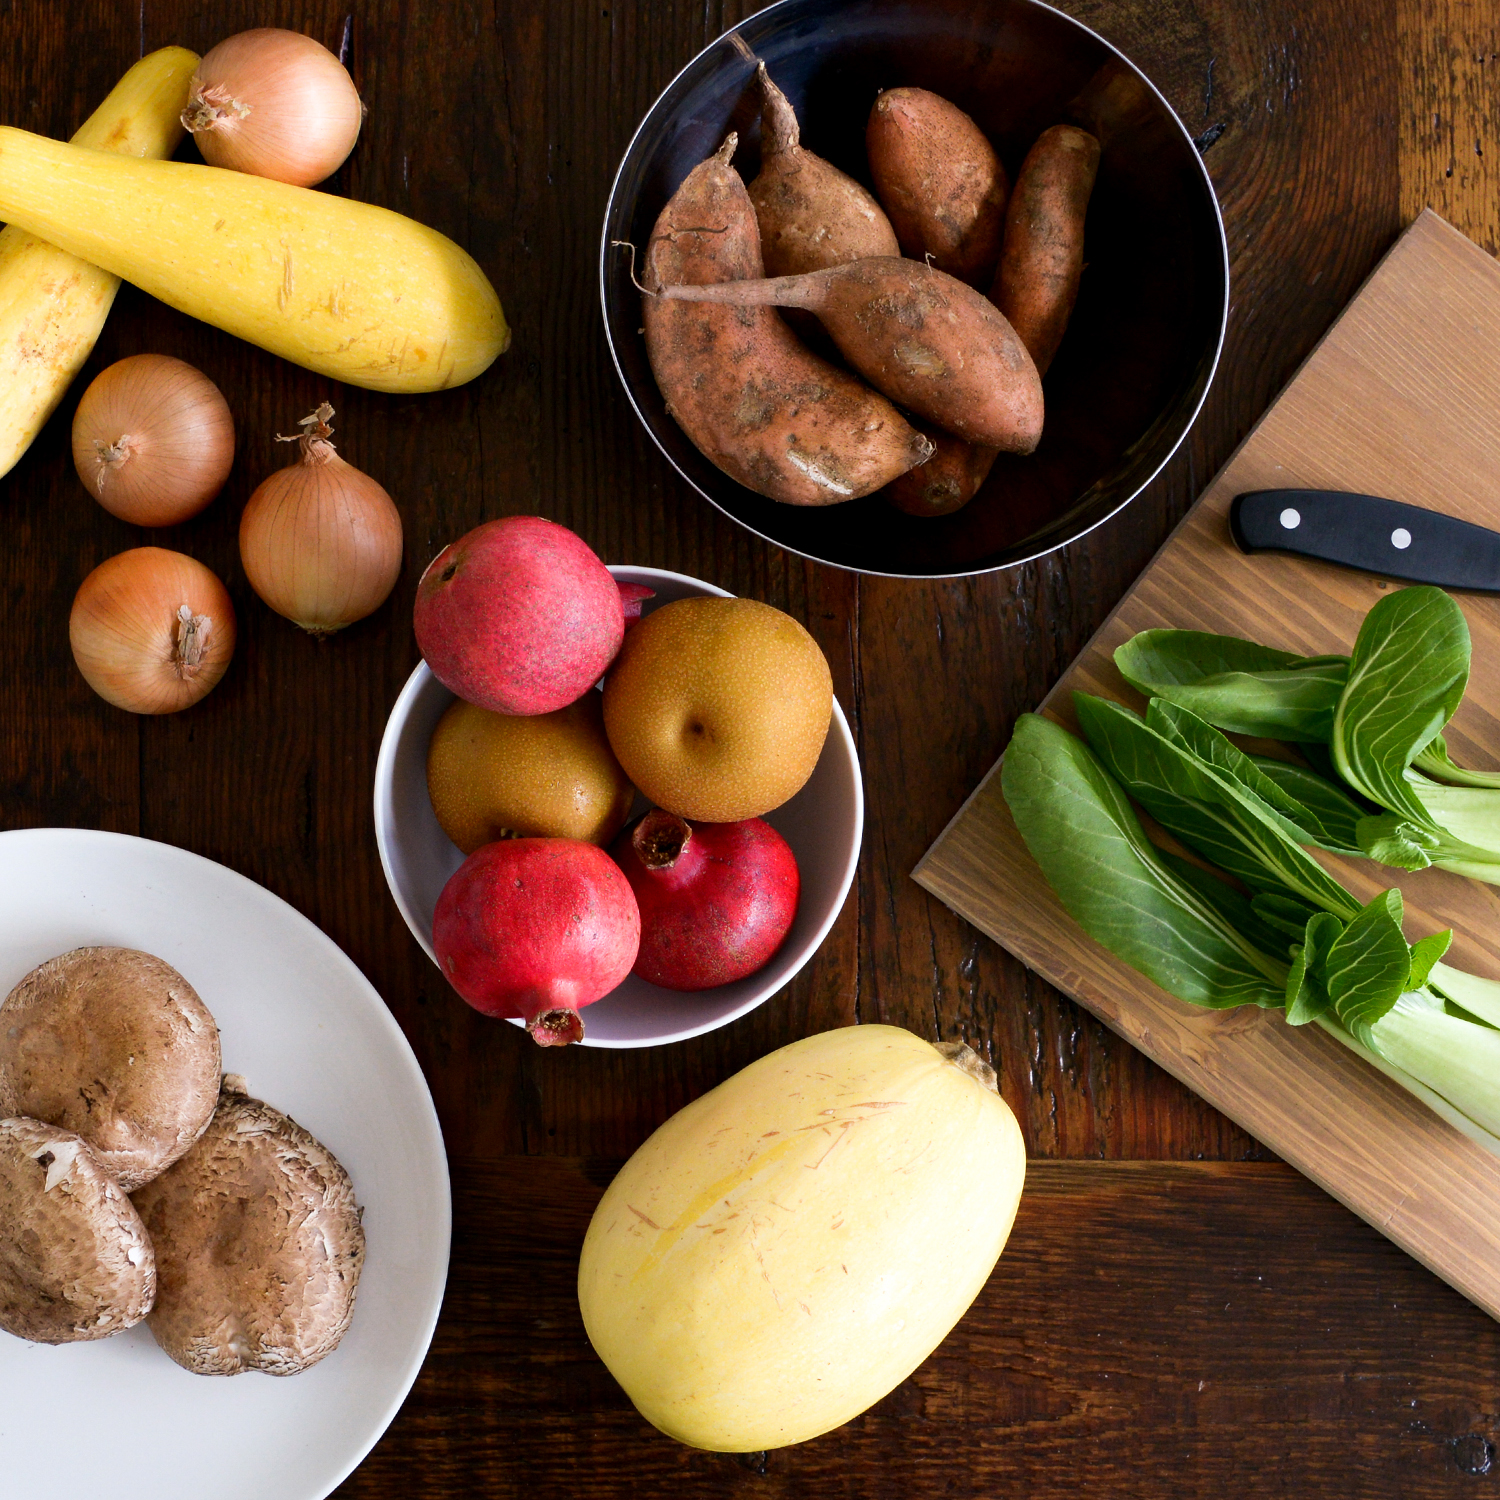 Let the produce inspire your meals. -